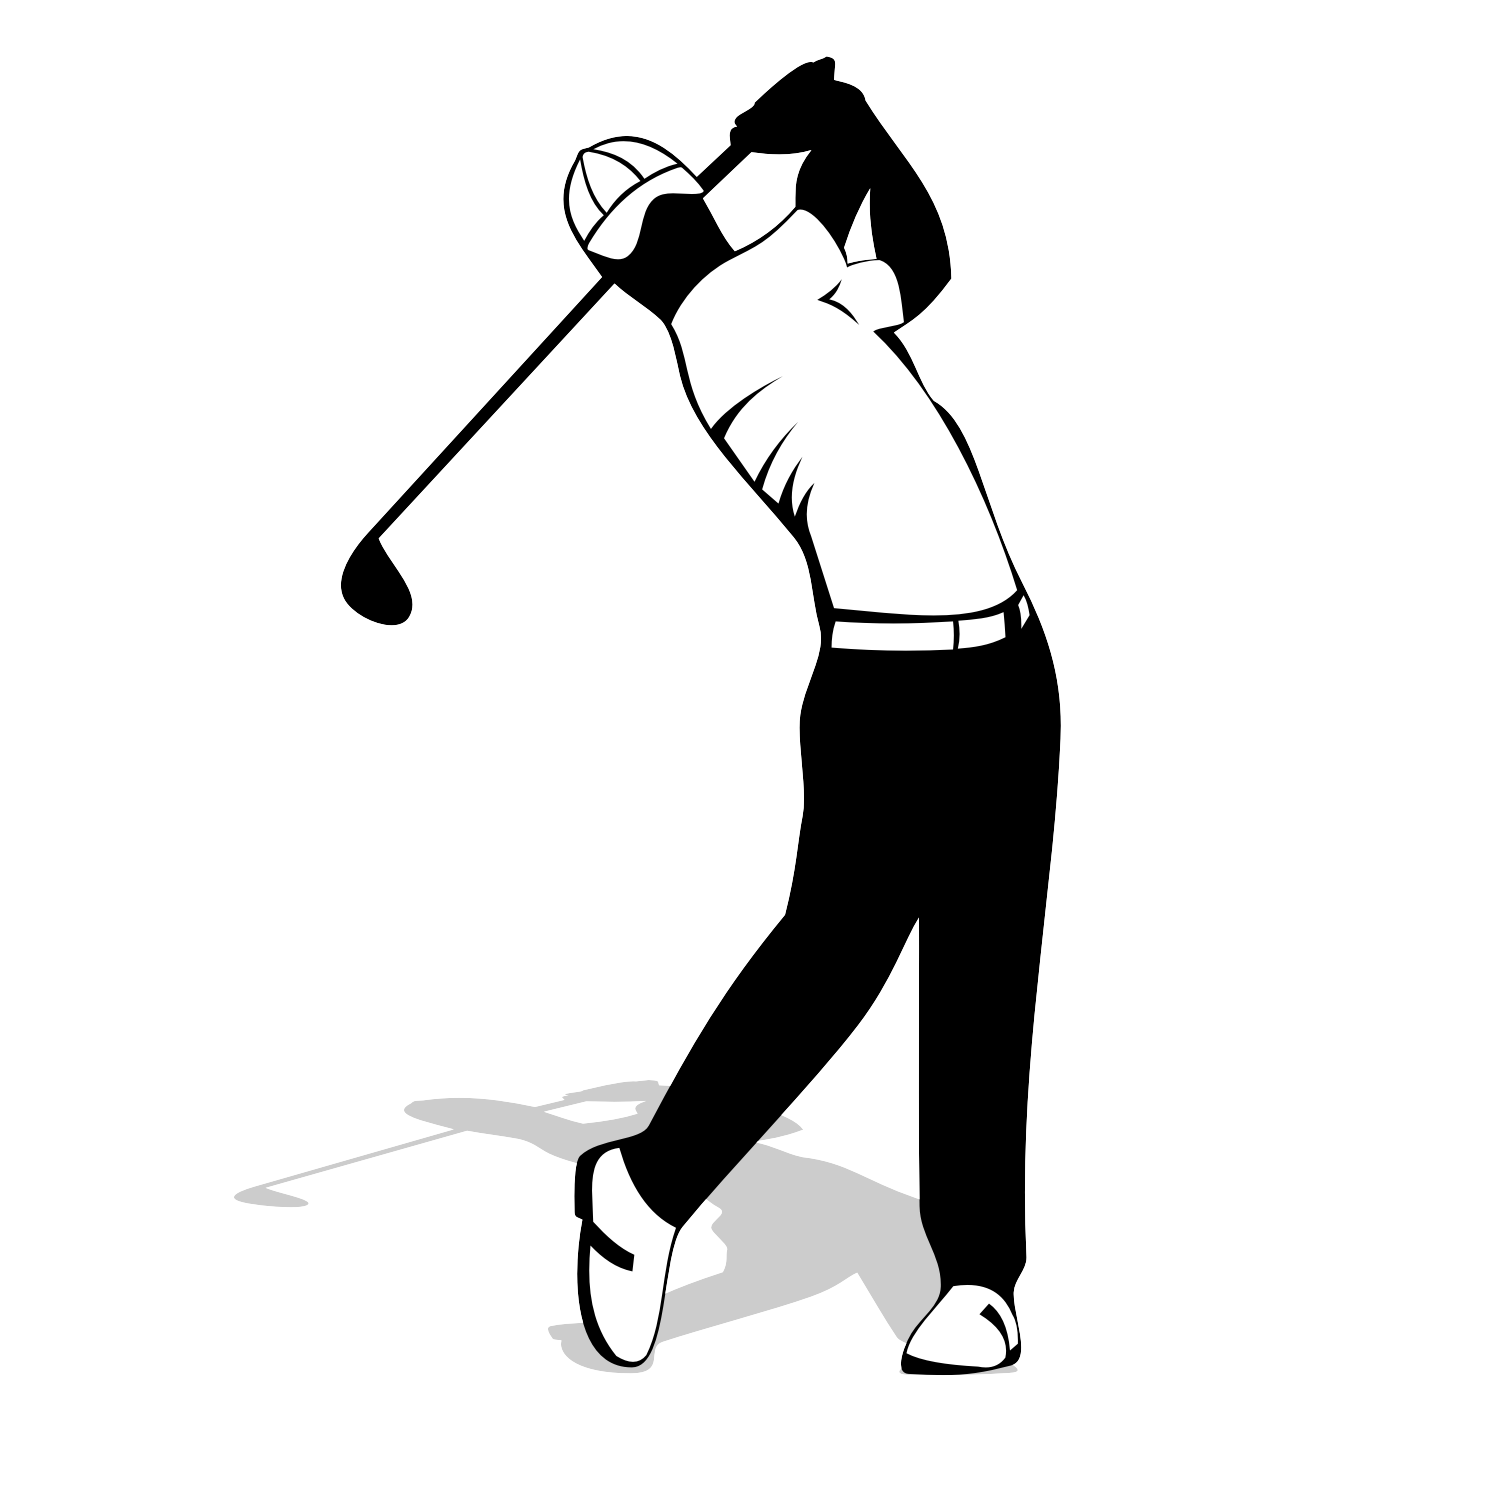 golf silhouette vector free at getdrawings com free for personal rh getdrawings com vector golf ball icon vector golf tees